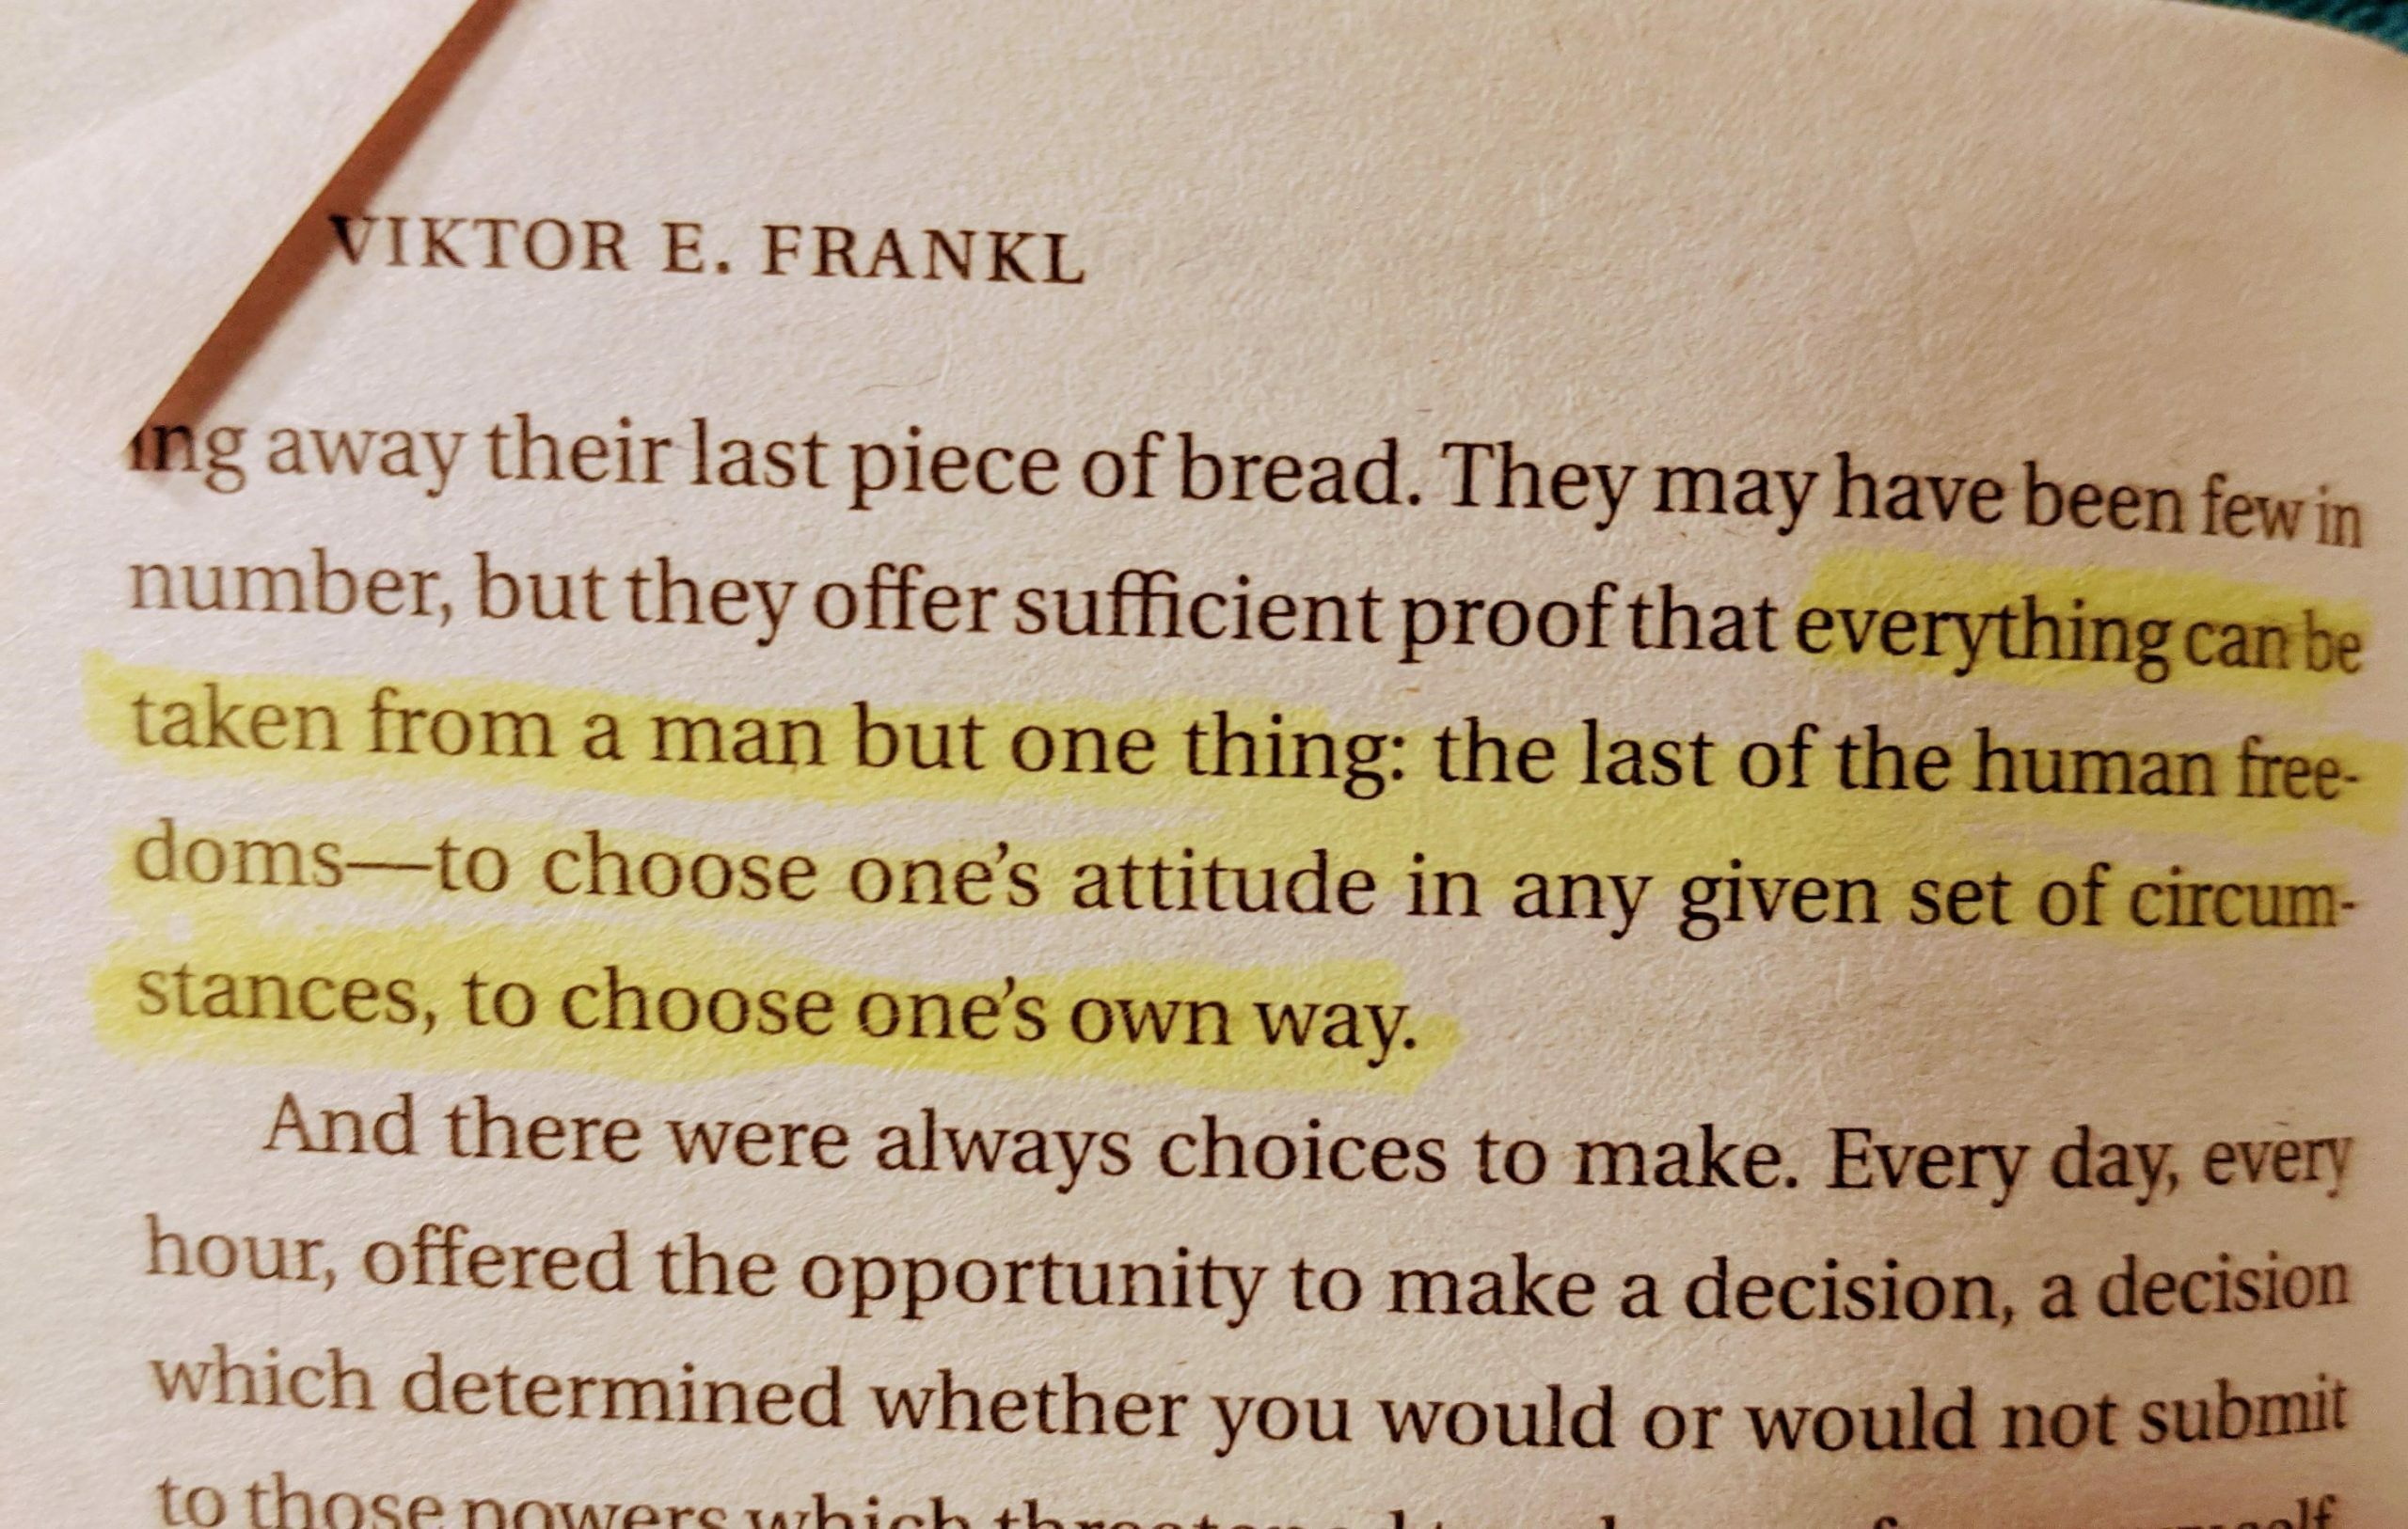 Finding Inspiration with Viktor Frankl